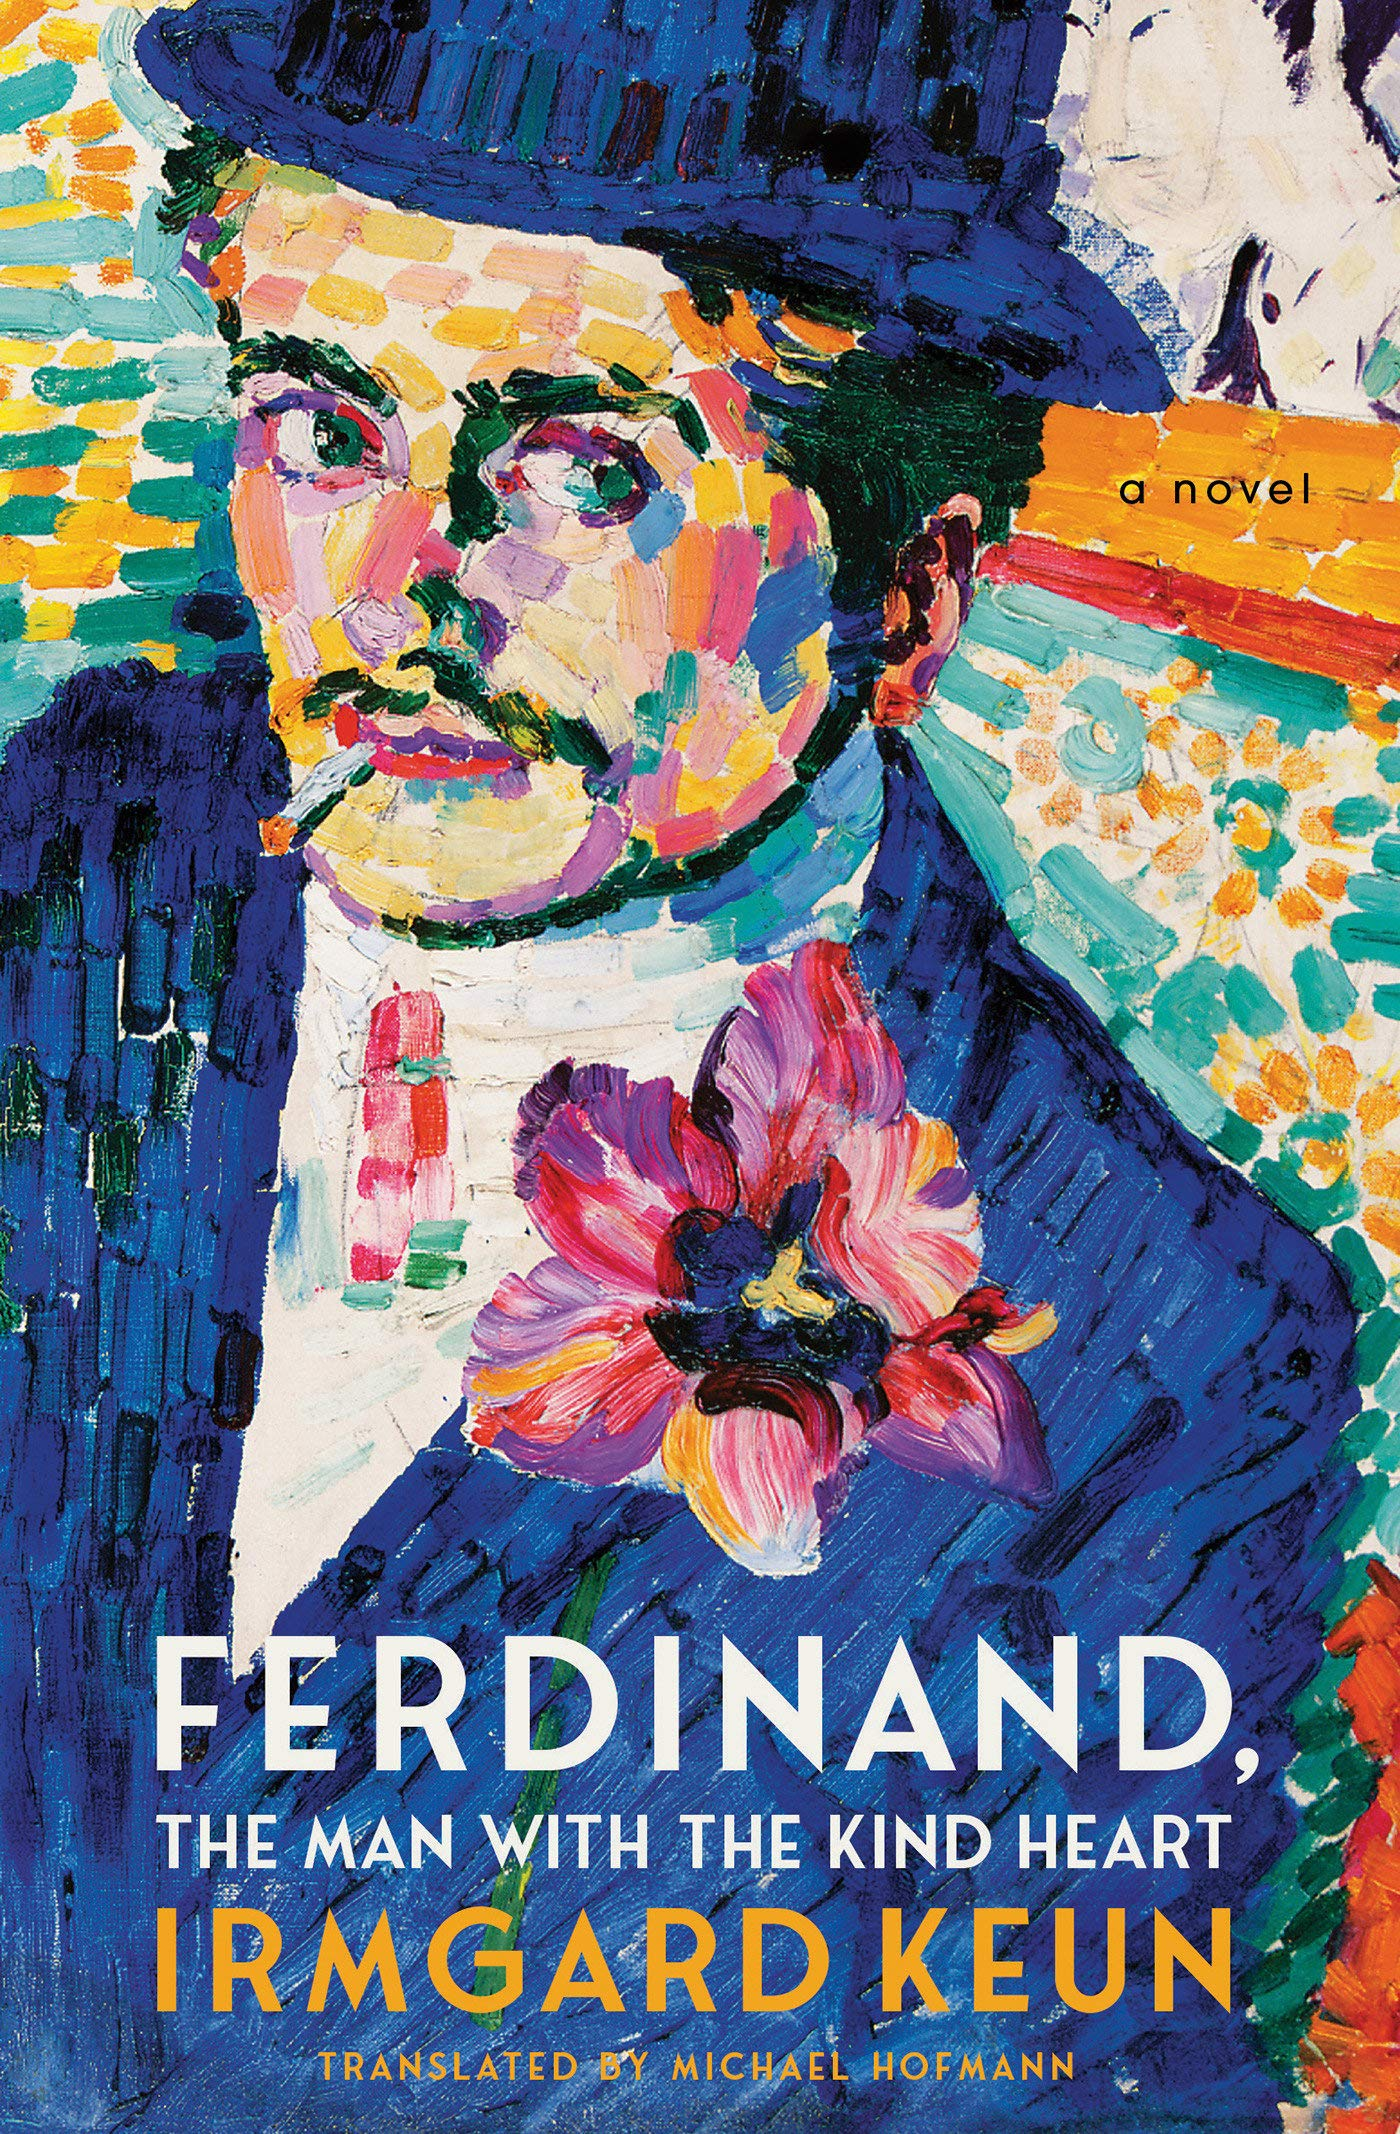 Ferdinand, The Man with the Kind Heart